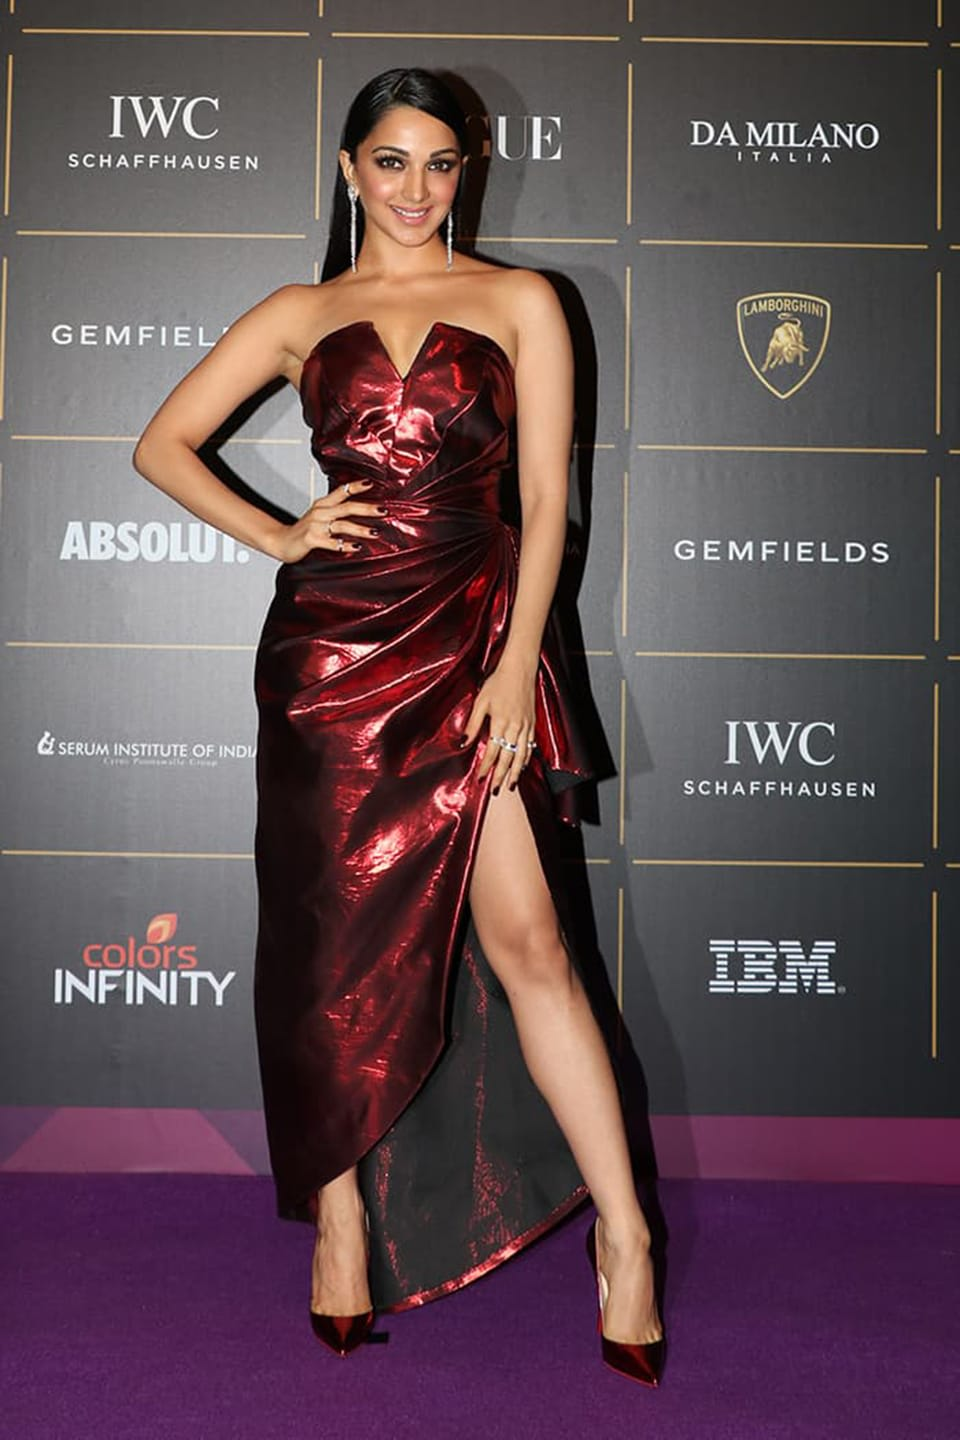 Dazzlerr: Metallic Outfits of These Bollywood Divas is Setting New Trend